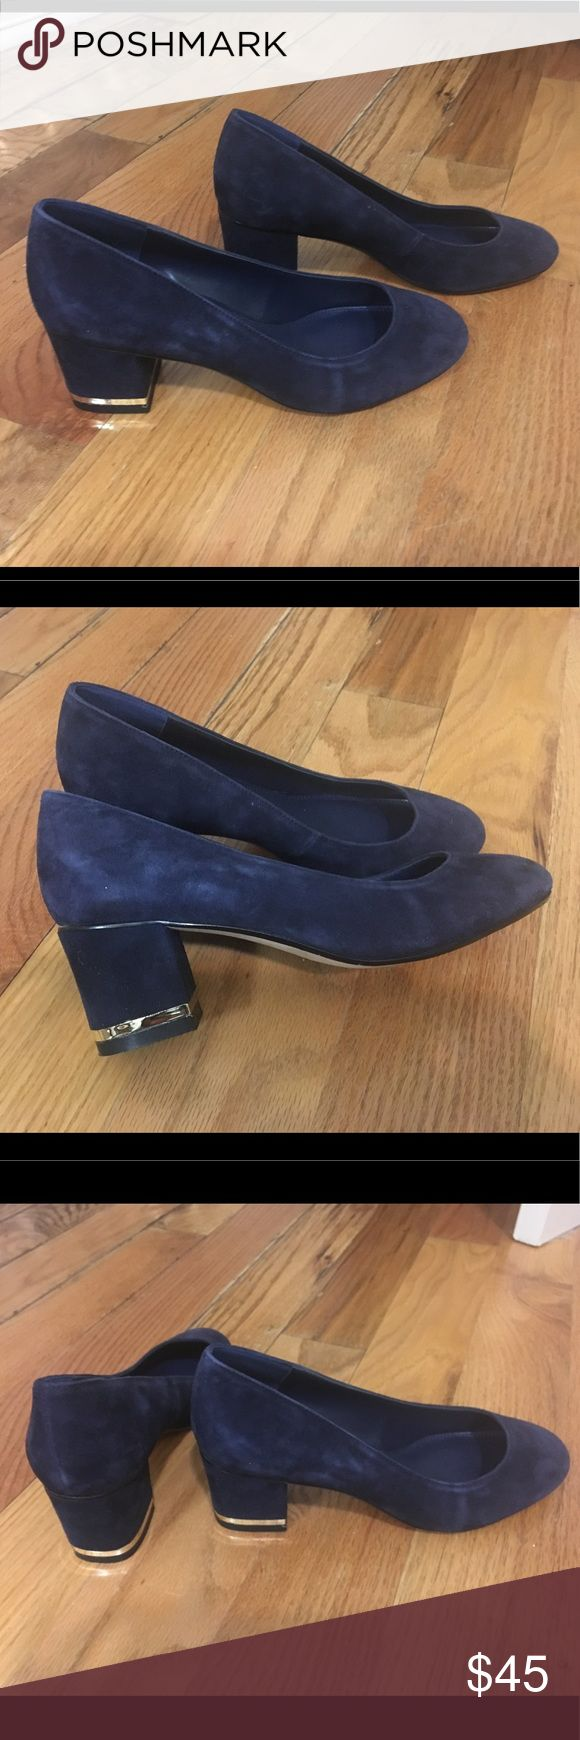 """DUNE London Suede Heel Dune London Suede Heel Size 6  Heel height approx 2.5""""  These were used as SALES SAMPLES in the Showroom in NYC.  *Never been worn Dune London Shoes Heels"""